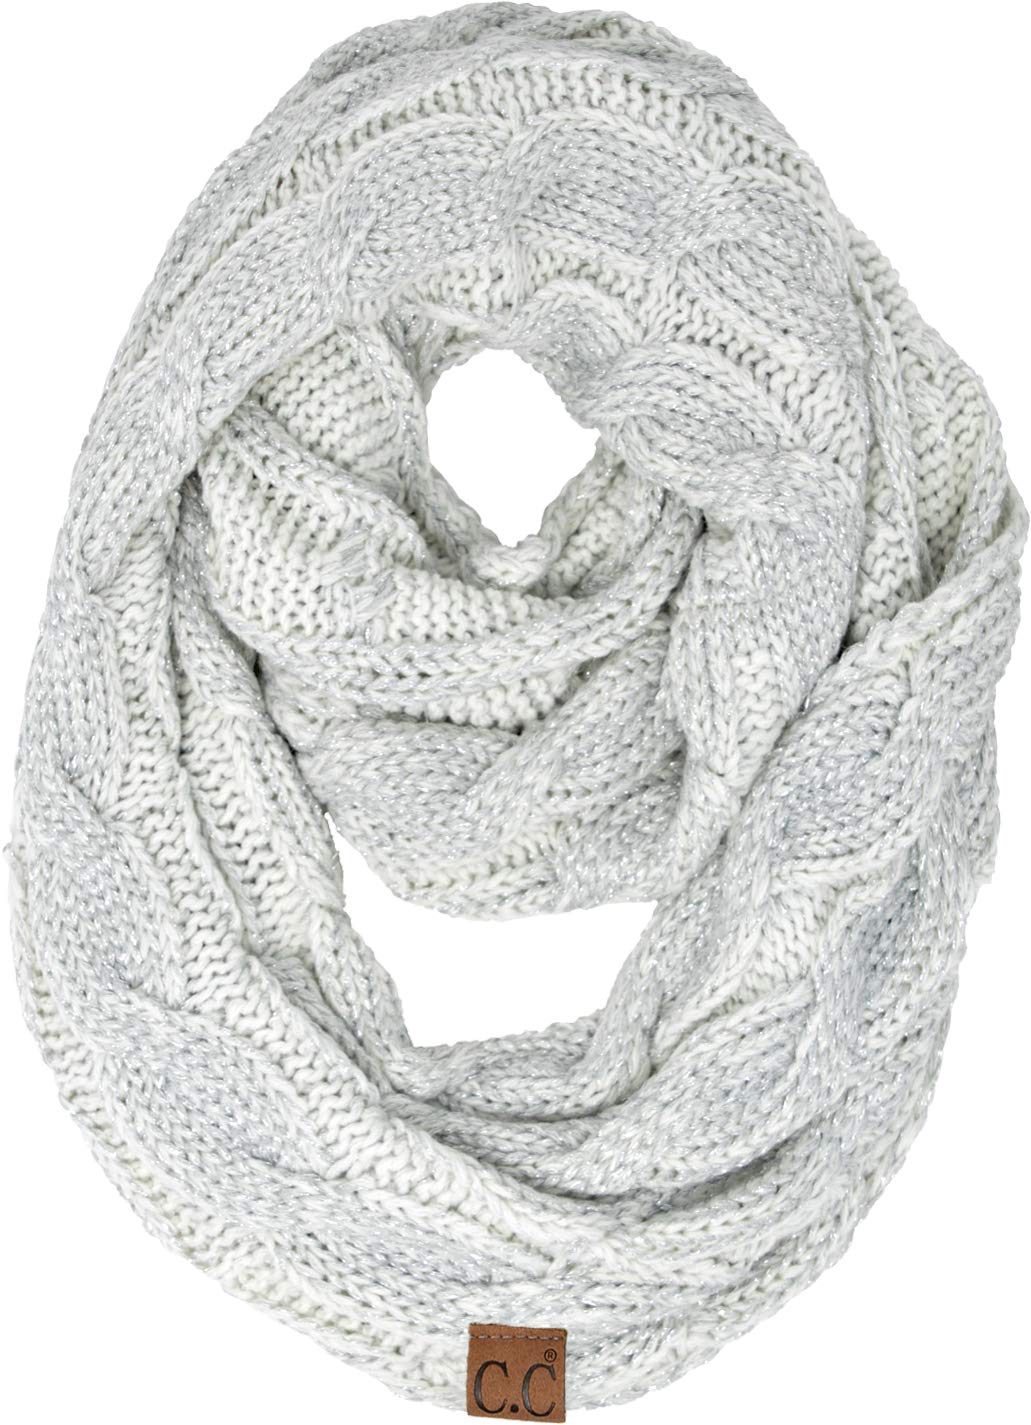 S1-6100-2501 Funky Junque Infinity Scarf - Metallic Ivory/Silver by Funky Junque